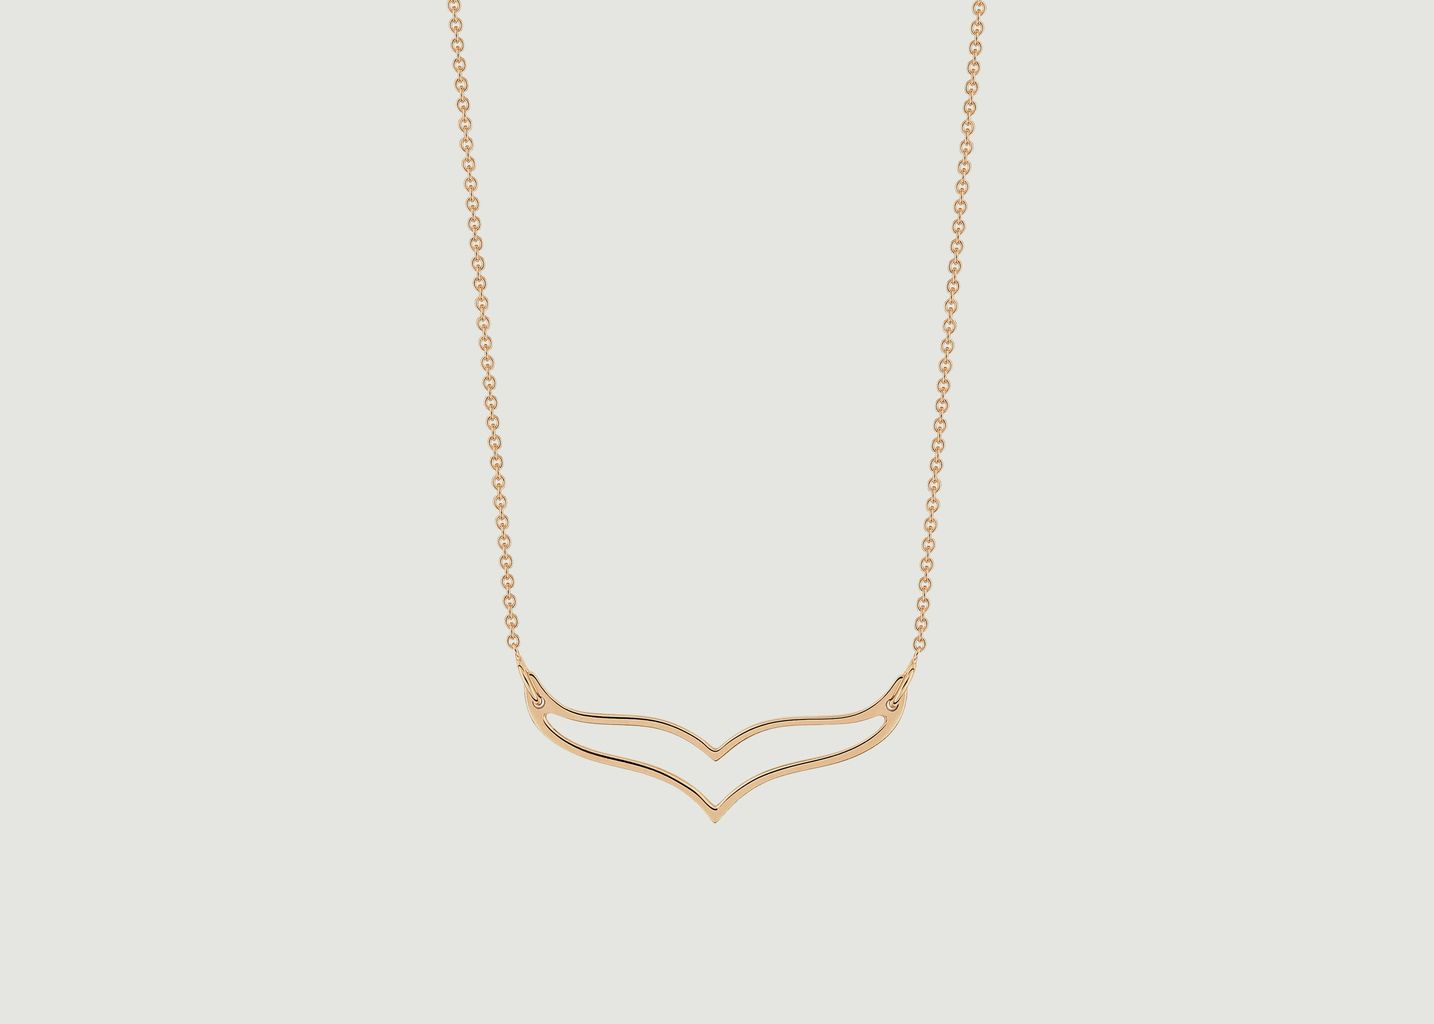 Mini Wise Necklace - Ginette NY